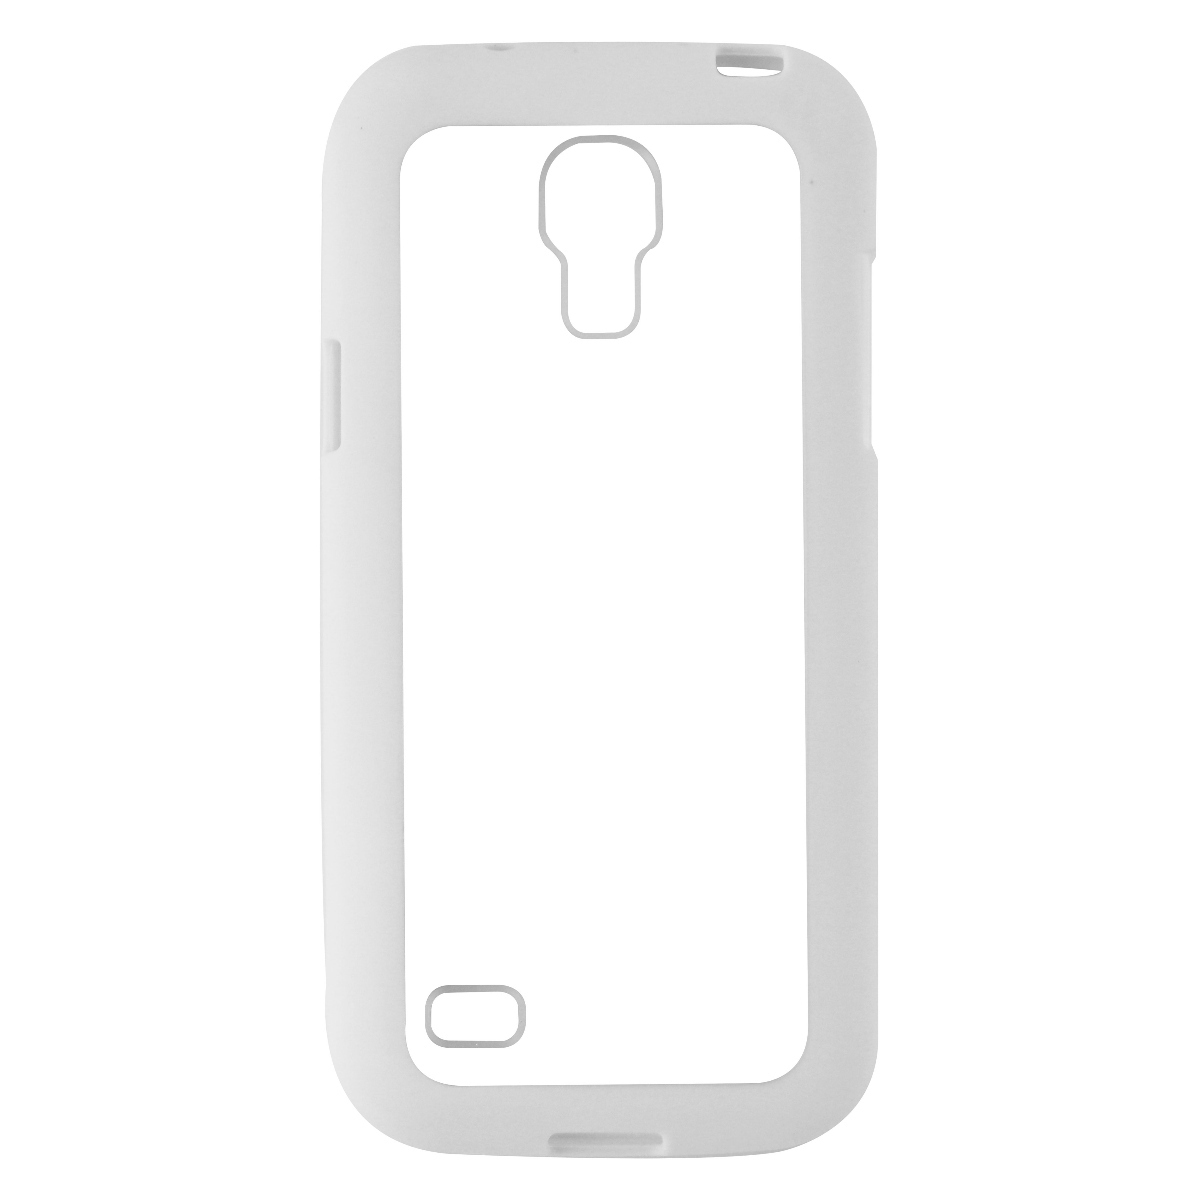 Wireless One Gravity Series Protective Case for Galaxy S4 Mini - White / Clear